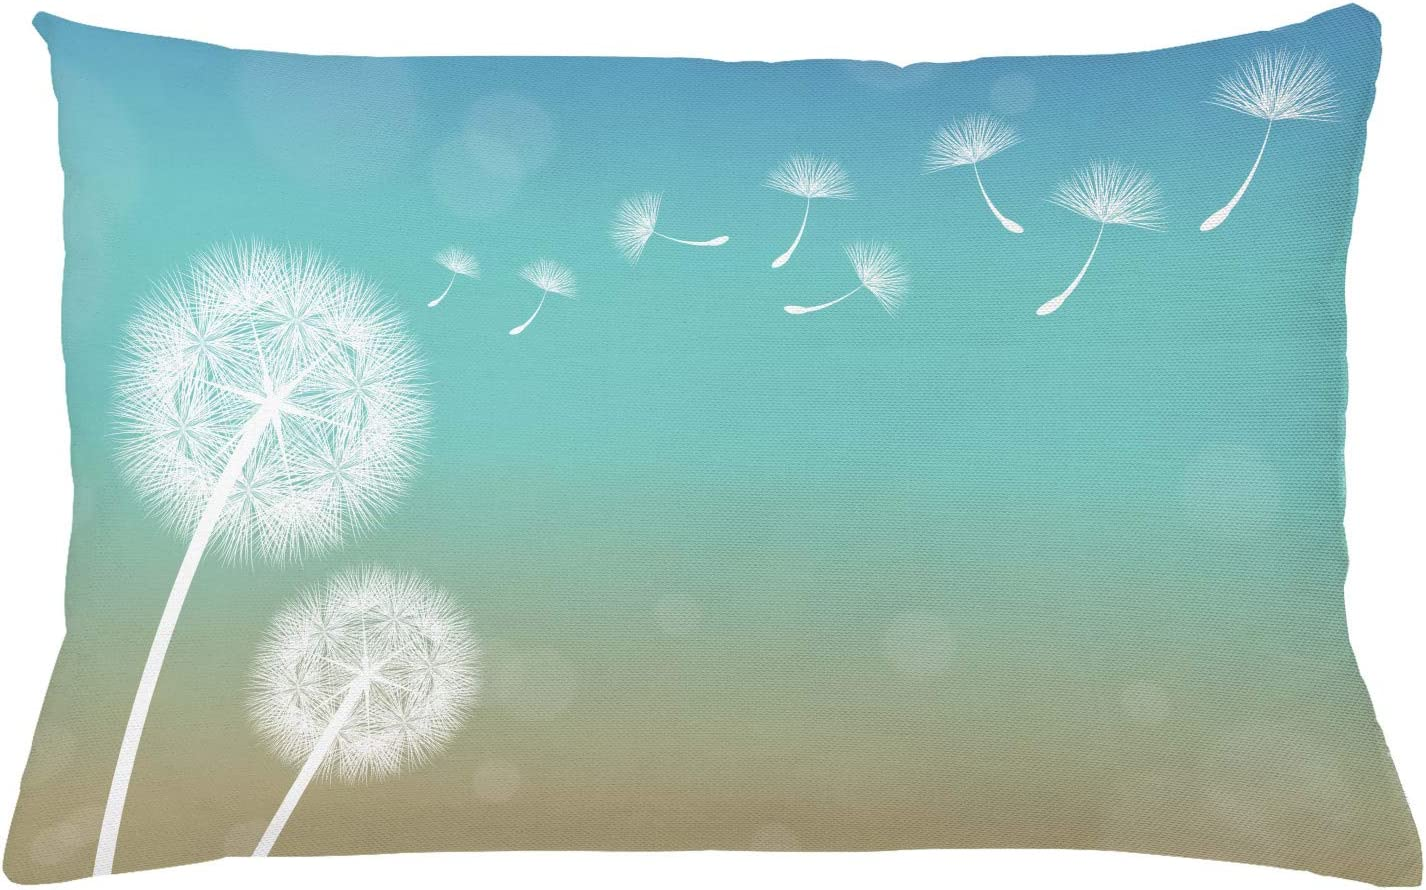 Ambesonne Dandelion Throw Pillow Cushion Cover, Blowball Flowers on Wind Blossoming Nature Outdoors of Growth, Decorative Rectangle Accent Pillow Case, 26